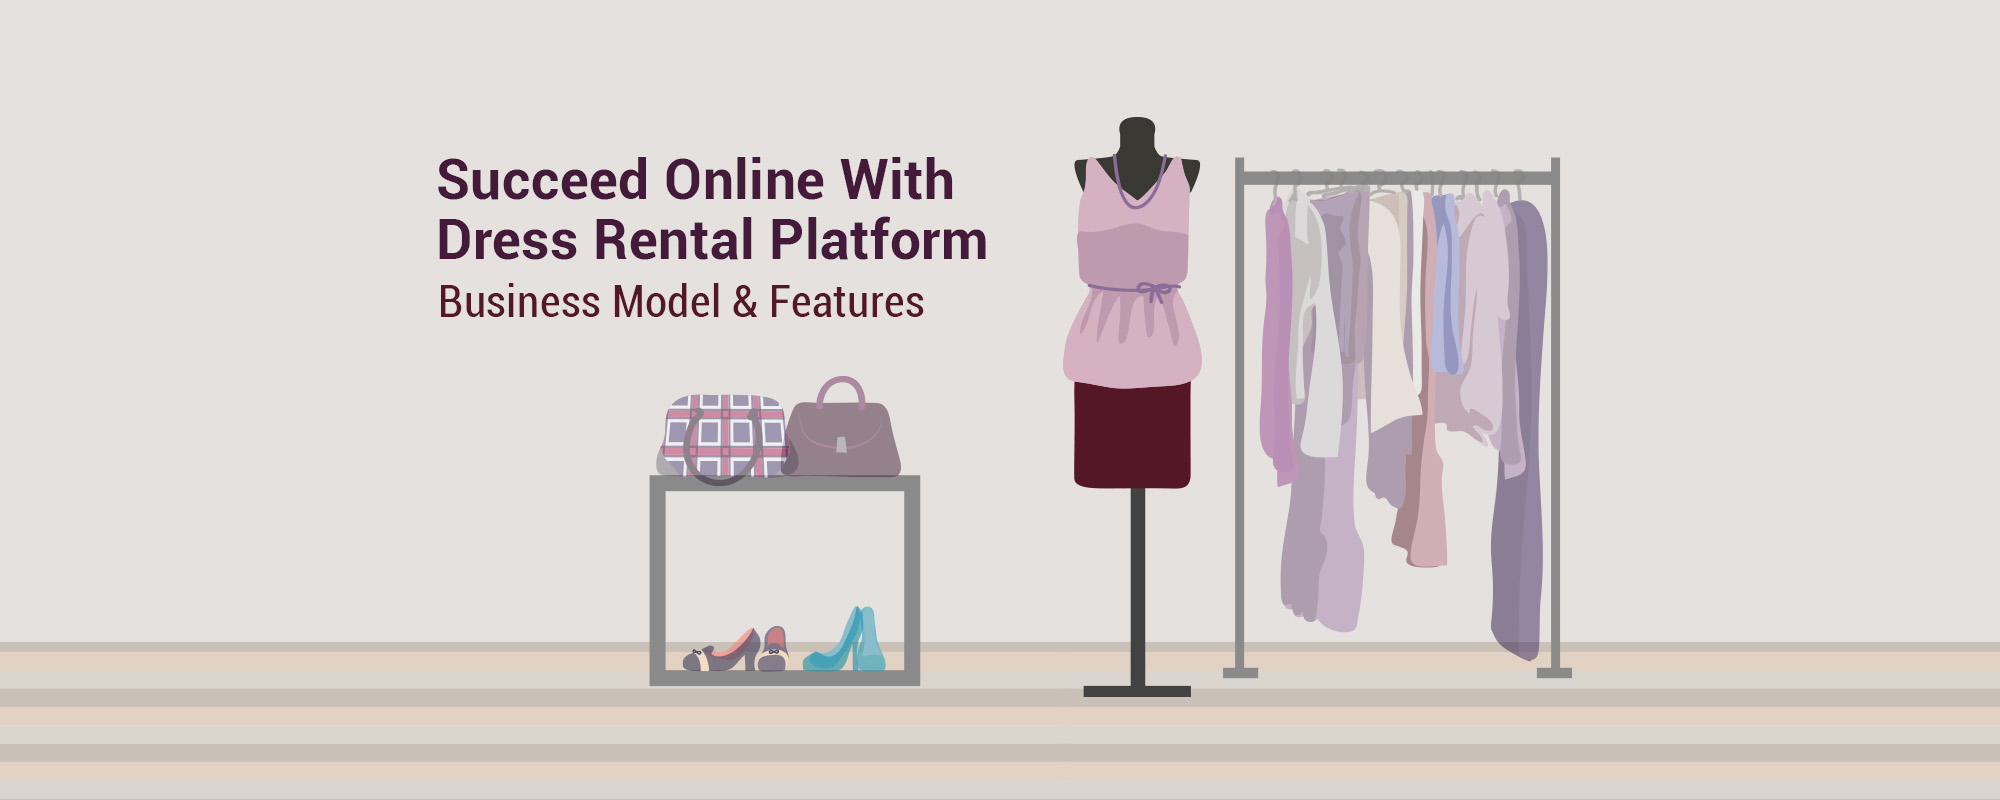 How to Start Online Dress Rental Business – Business Model and Website Features